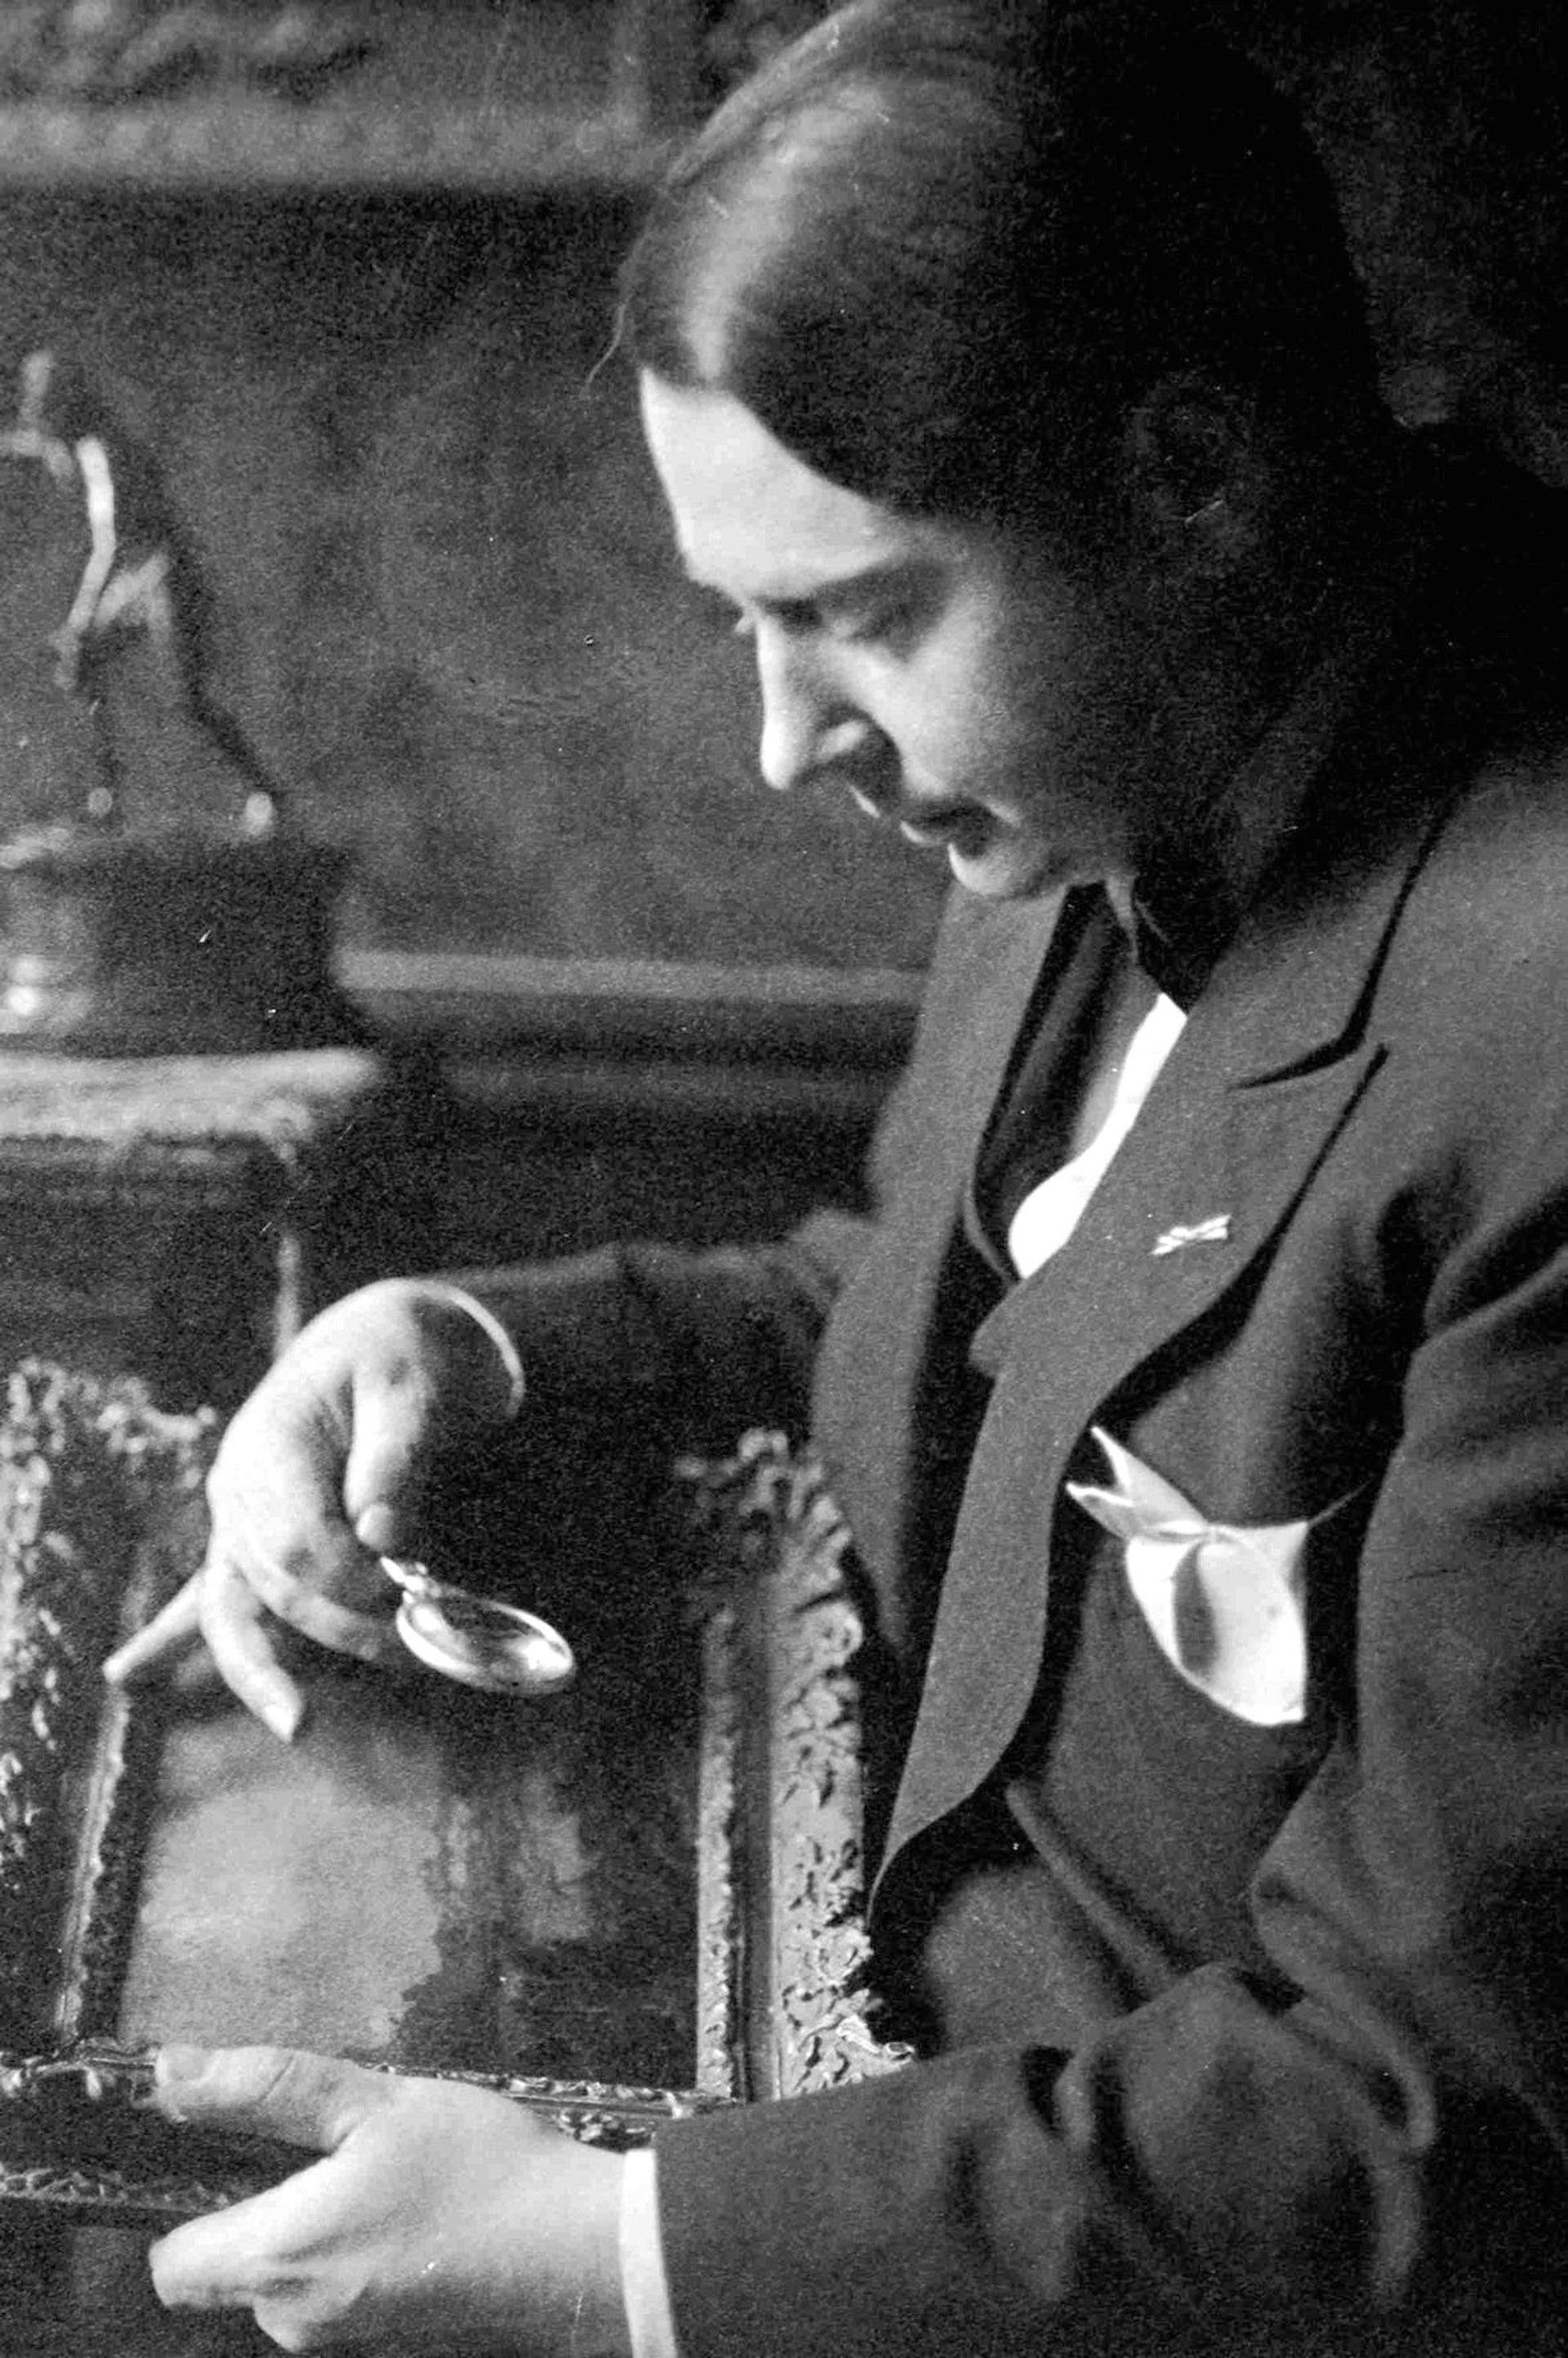 Jacques Goudstikker, a Jewish art dealer who fled Amsterdam in 1940. Over 1,200 artworks owned by him were stolen; a few hundred have been returned to his family.